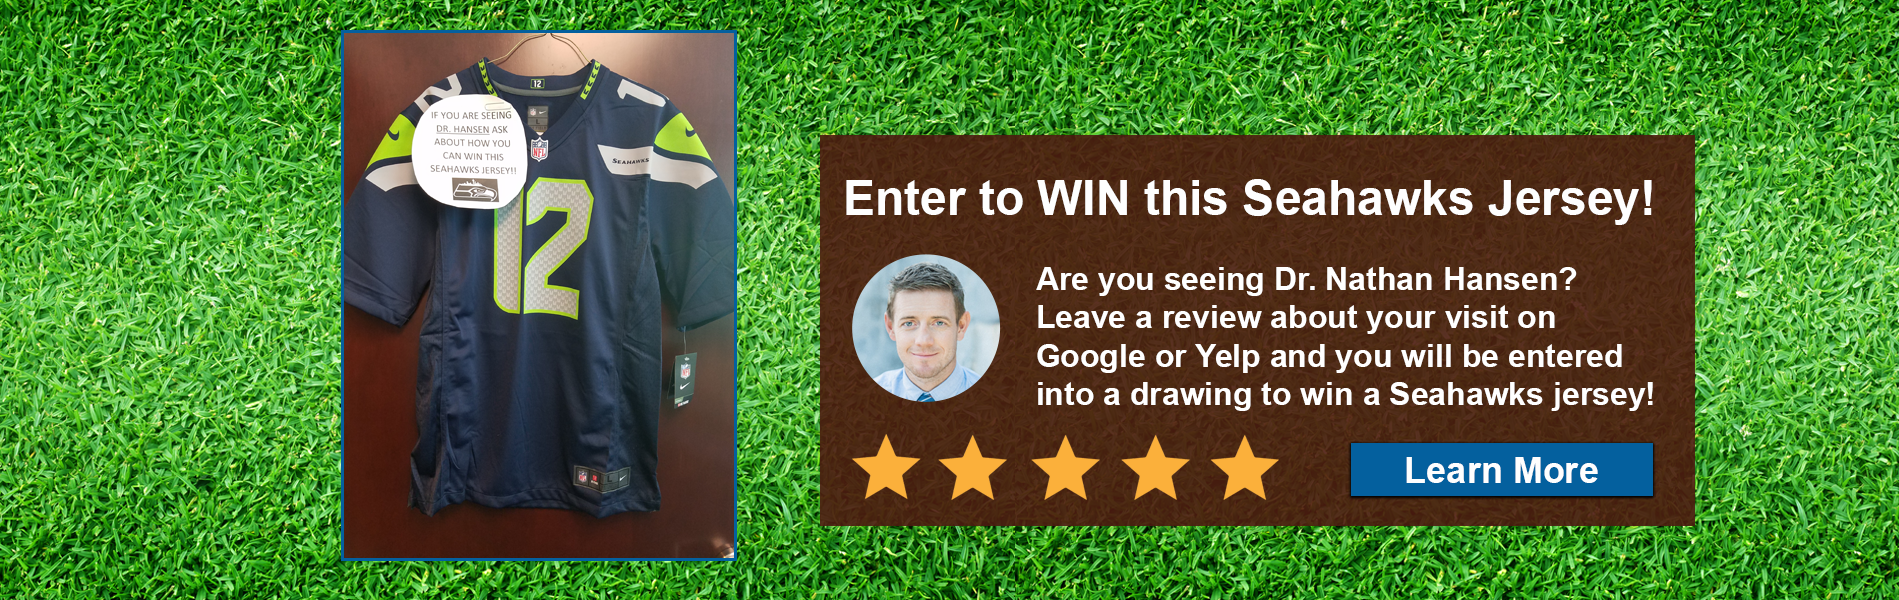 Enter-To-Win-Seahawks-Jersey